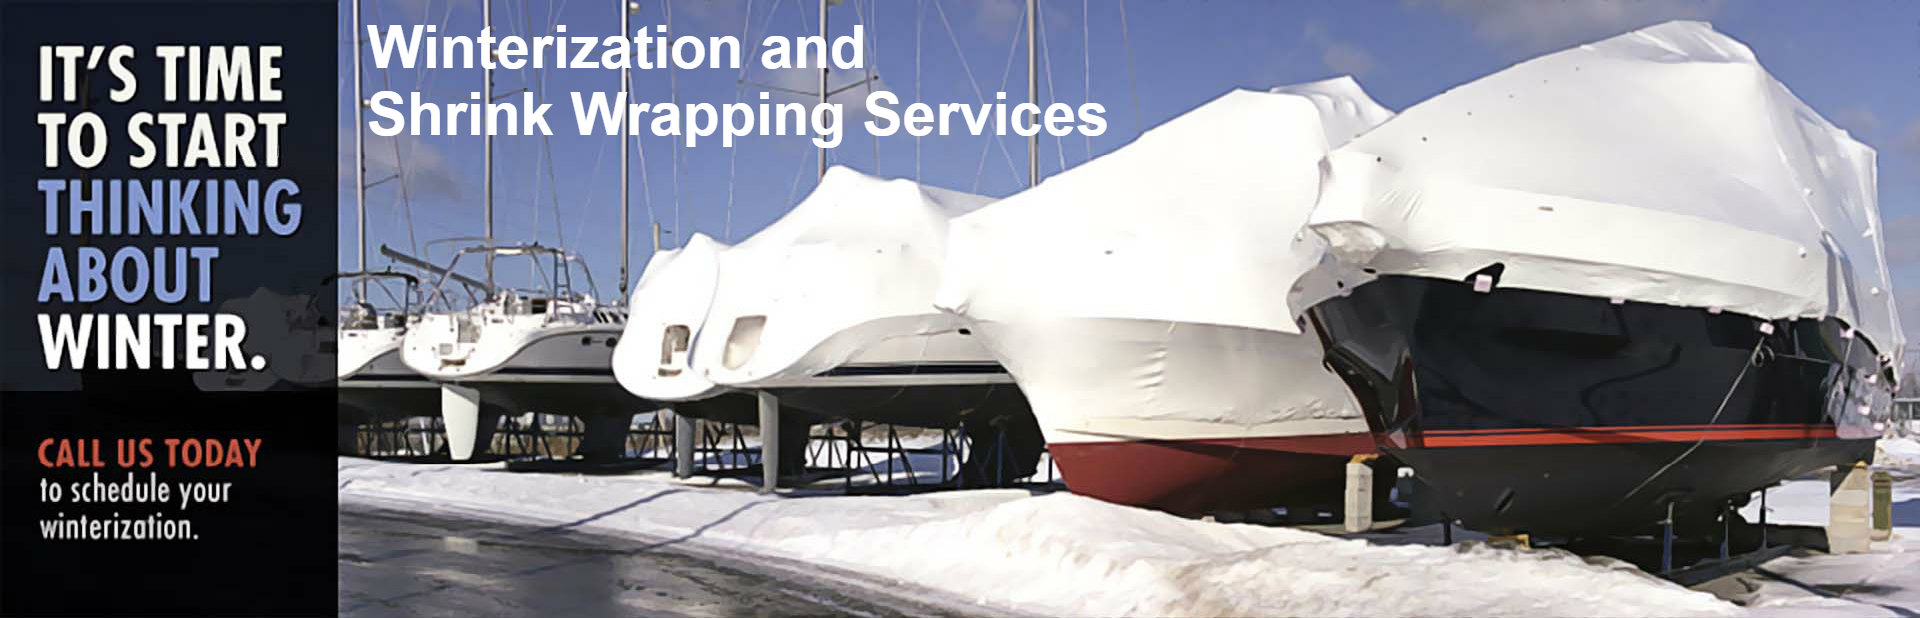 Winterization/Shrink Wrapping Services